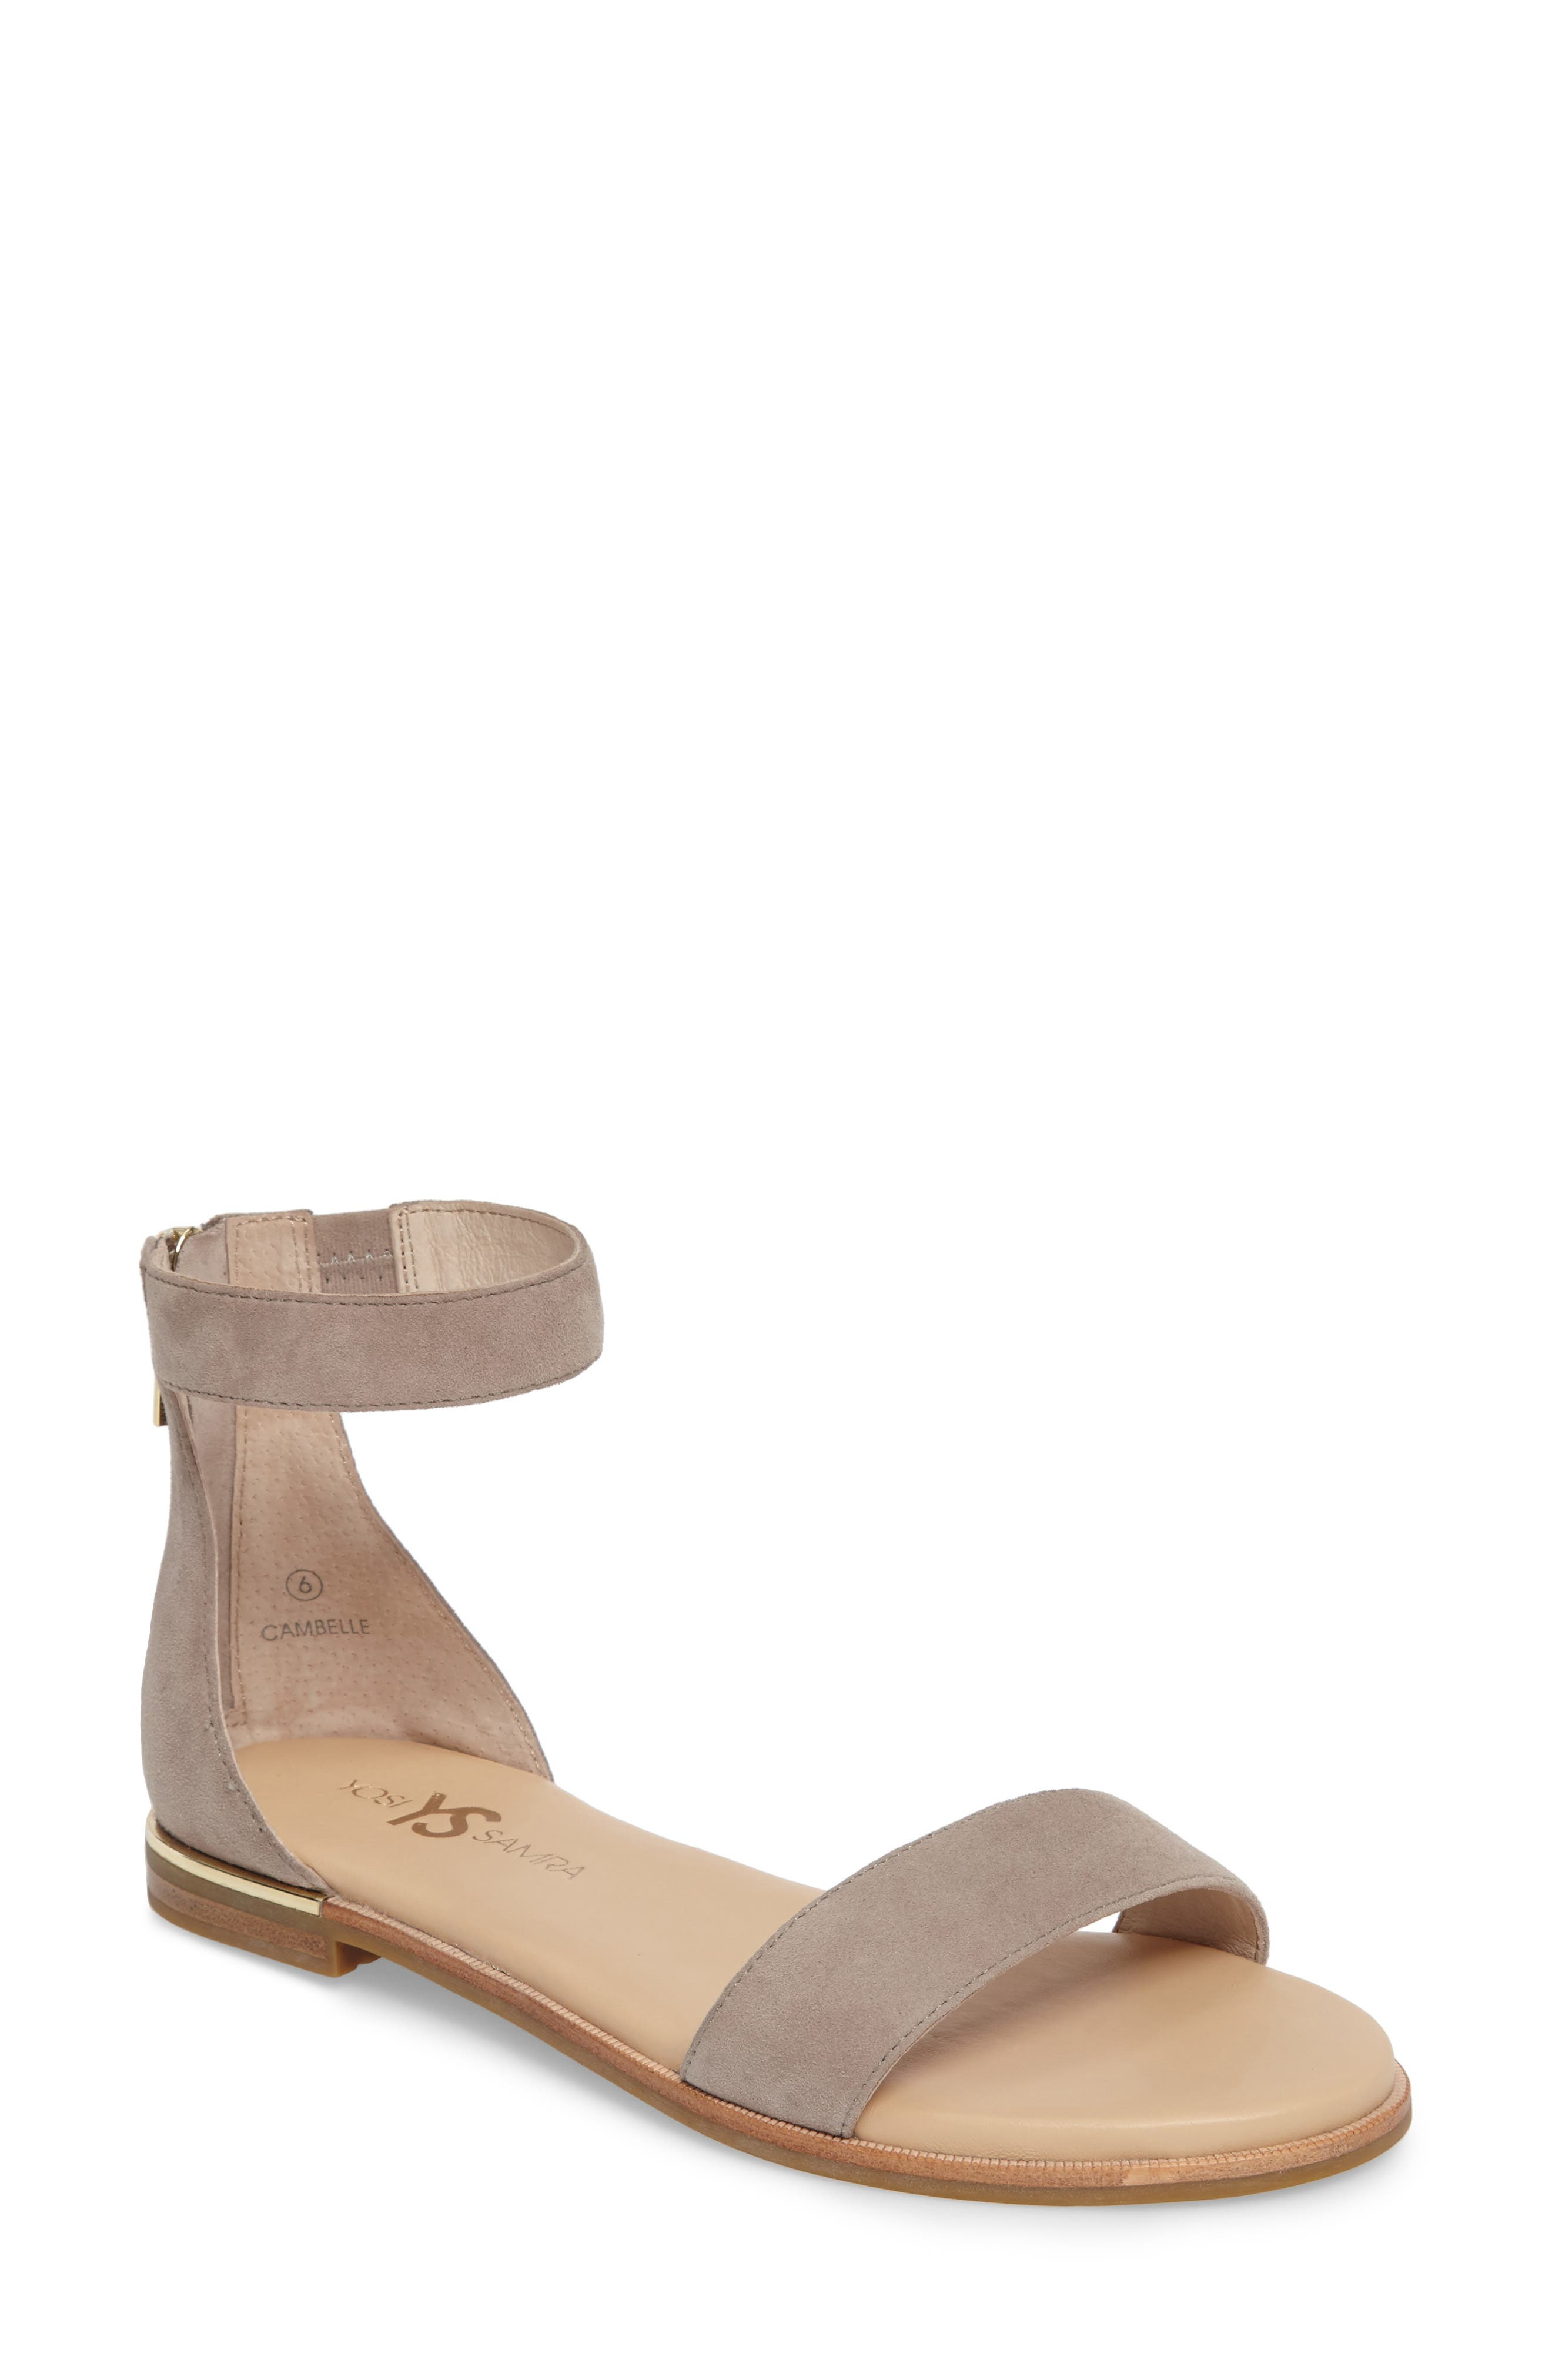 ,                             'Cambelle' Ankle Strap Sandal,                             Main thumbnail 33, color,                             250